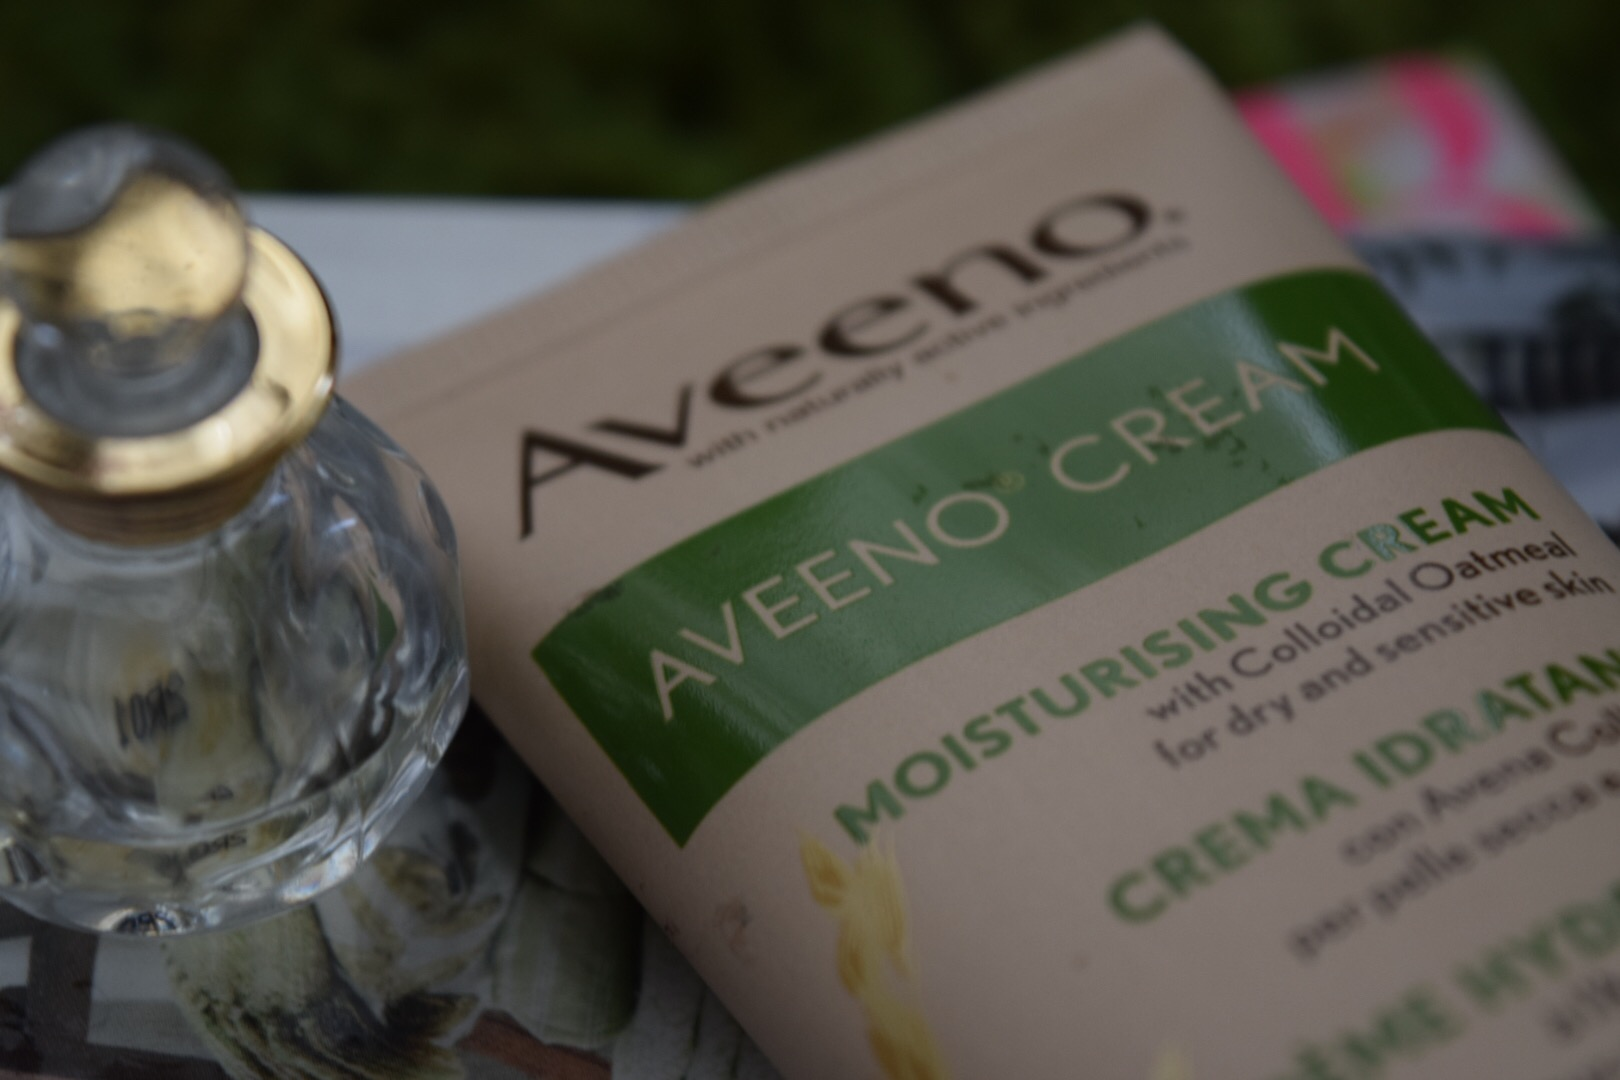 Aveeno Moisturising Cream Review